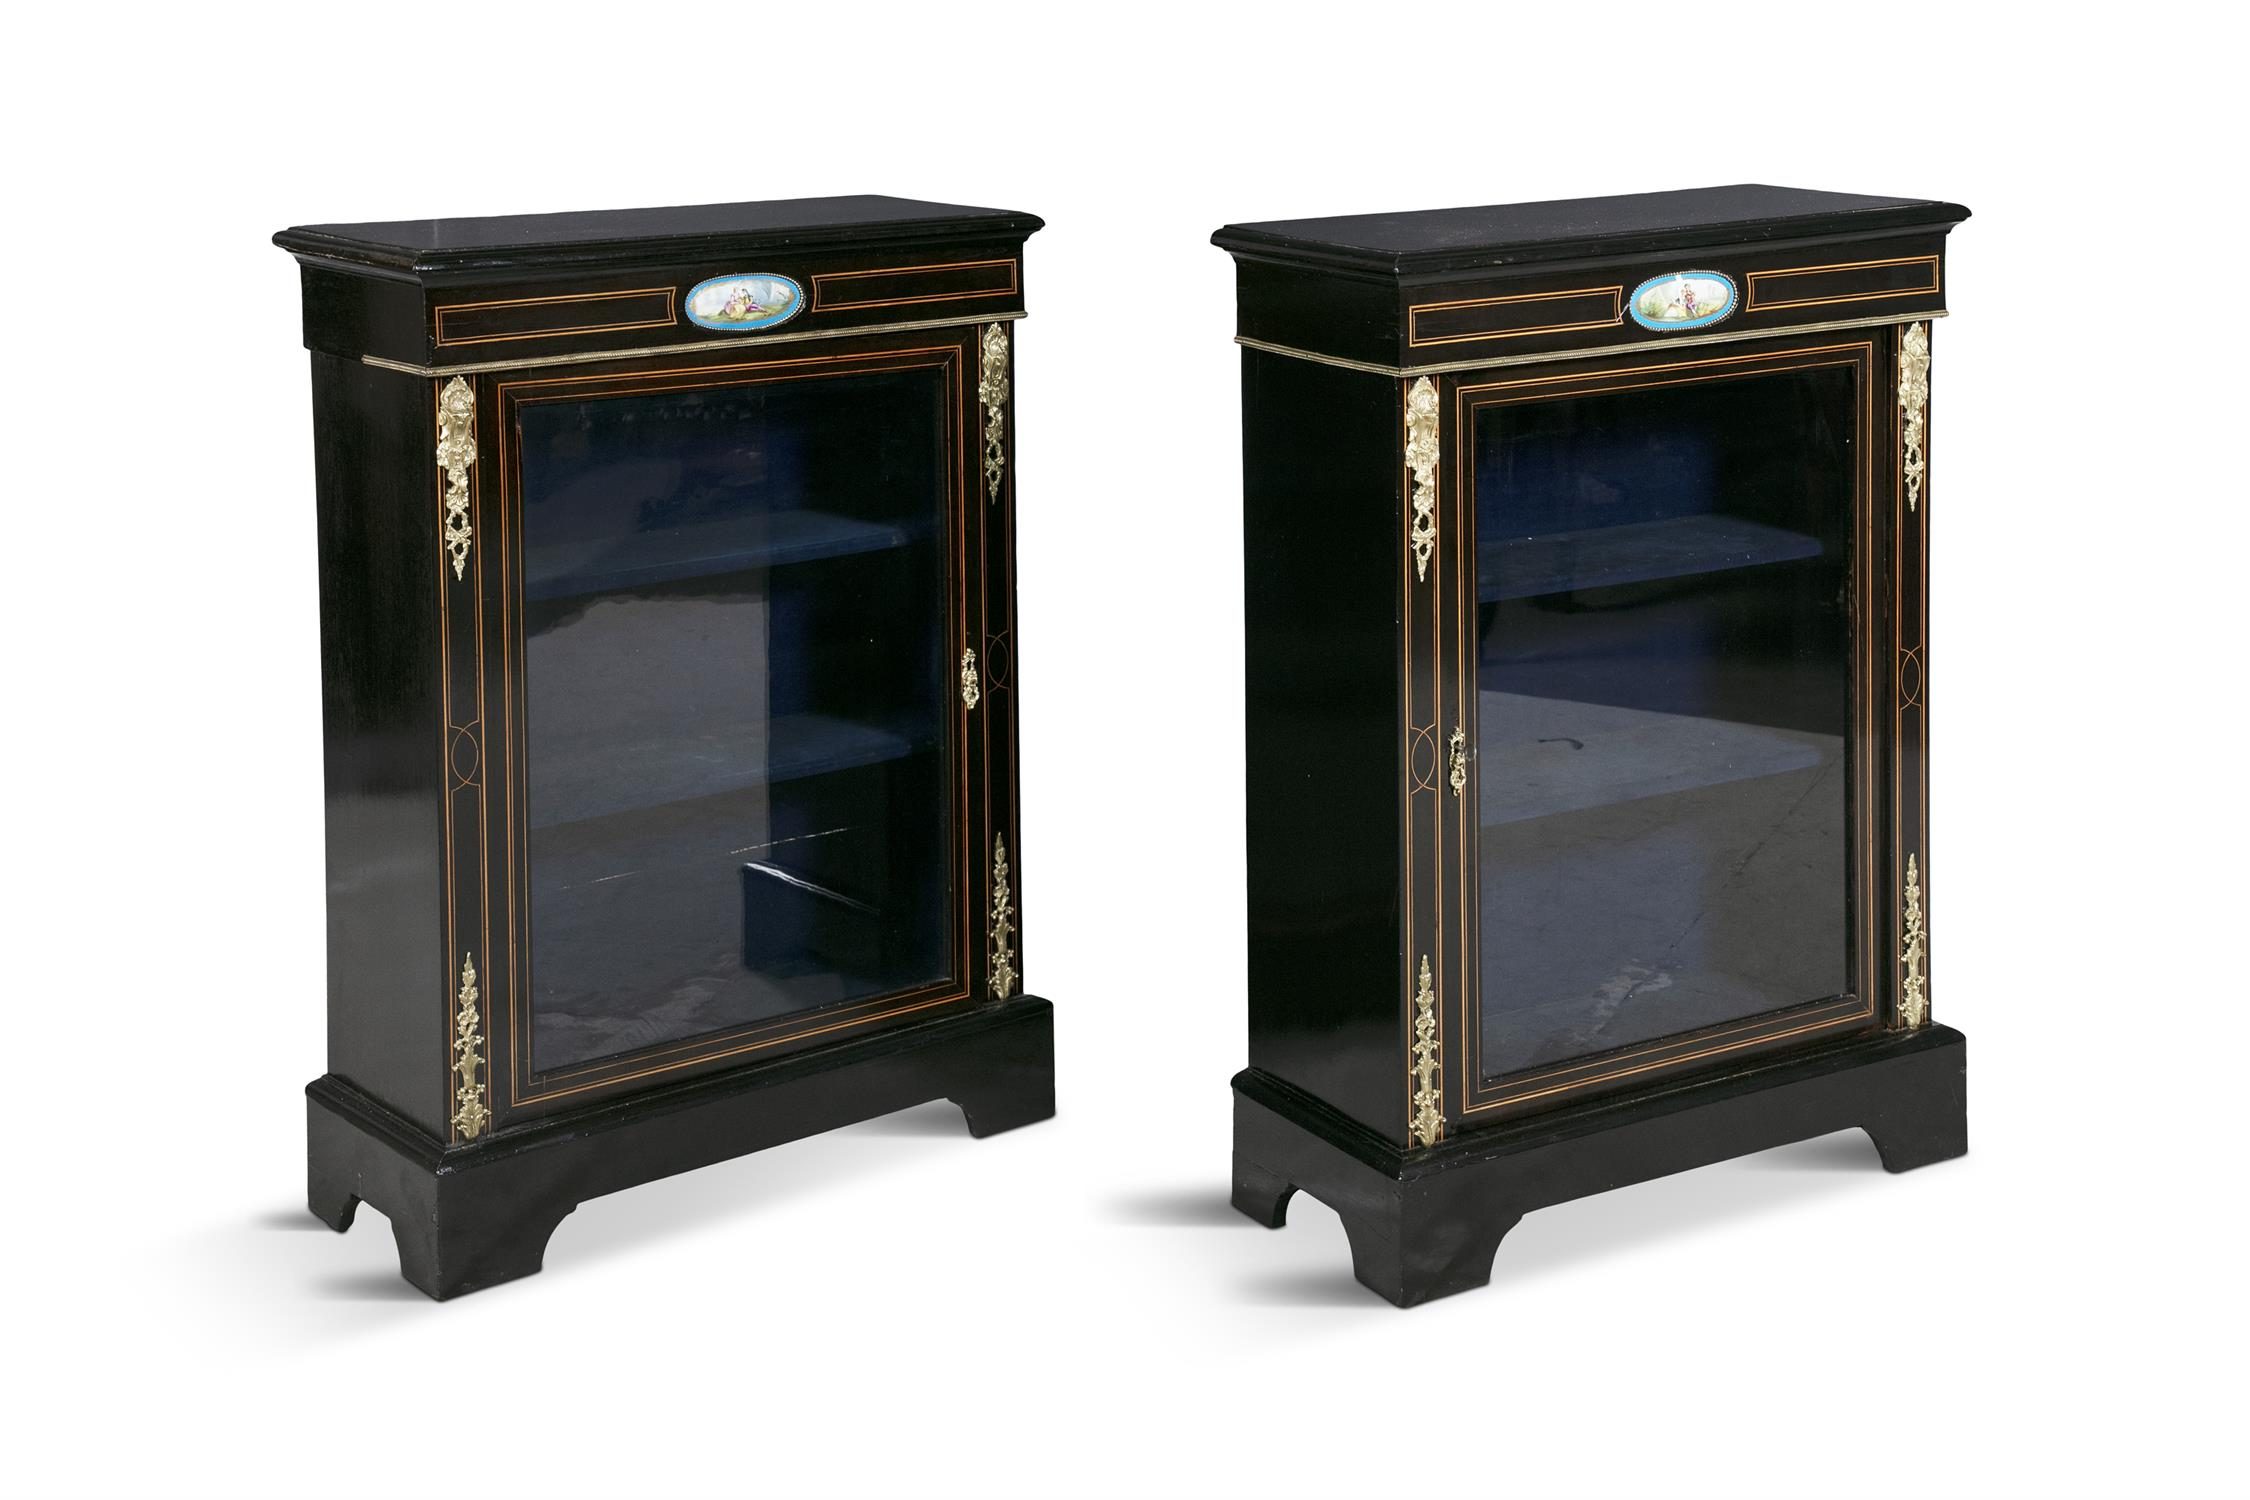 A PAIR OF 19TH CENTURY BRASS MOUNTED EBONISED CABINETS, of rectangular form, the tops with moulded - Image 2 of 2